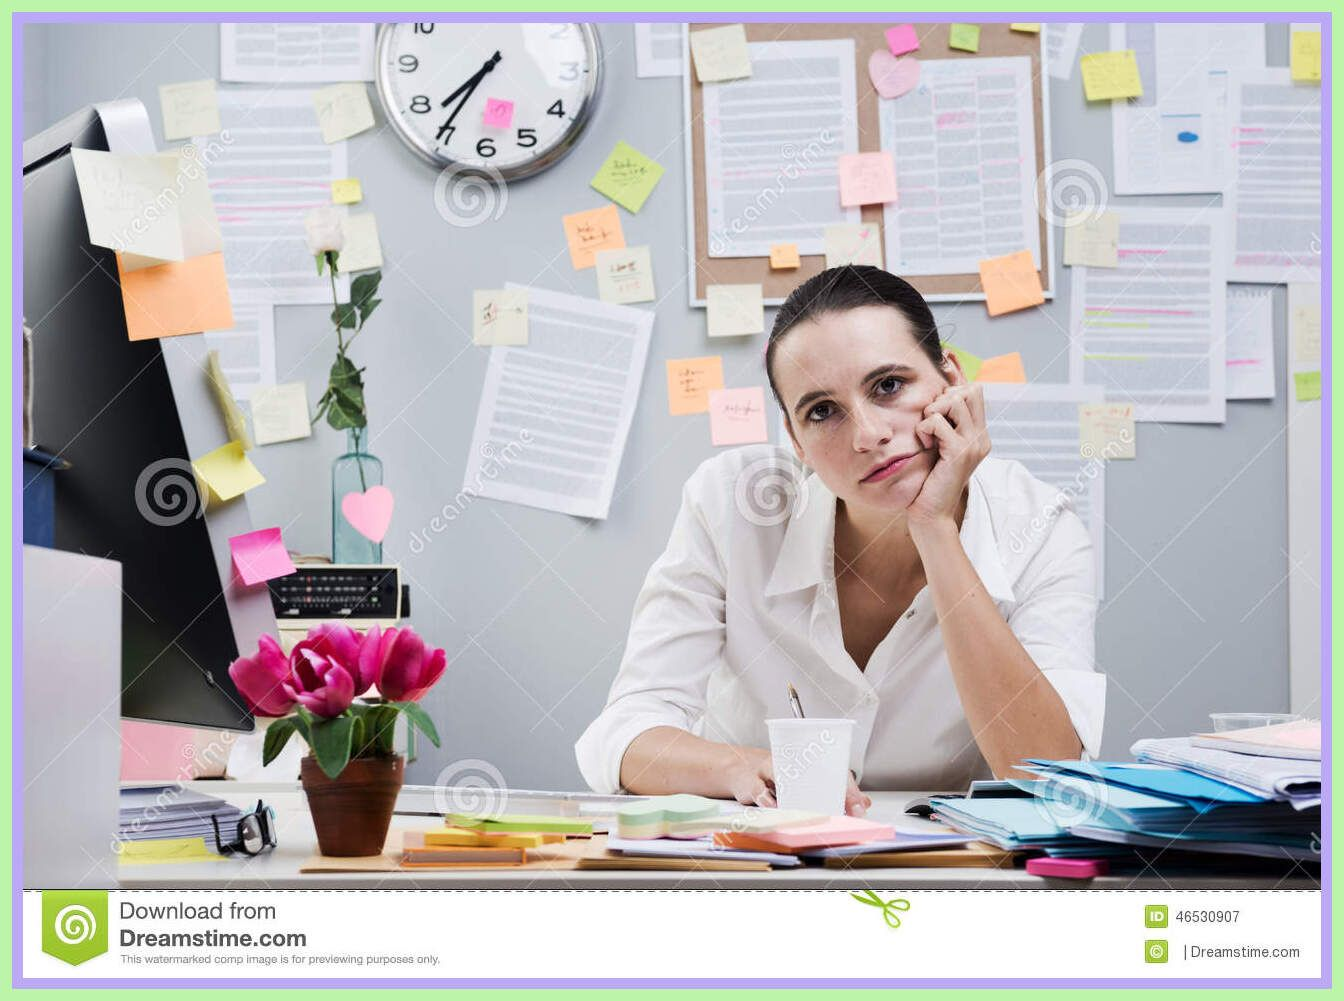 light office work jobs-#light #office #work #jobs Please Click Link To Find More Reference,,, ENJOY!!